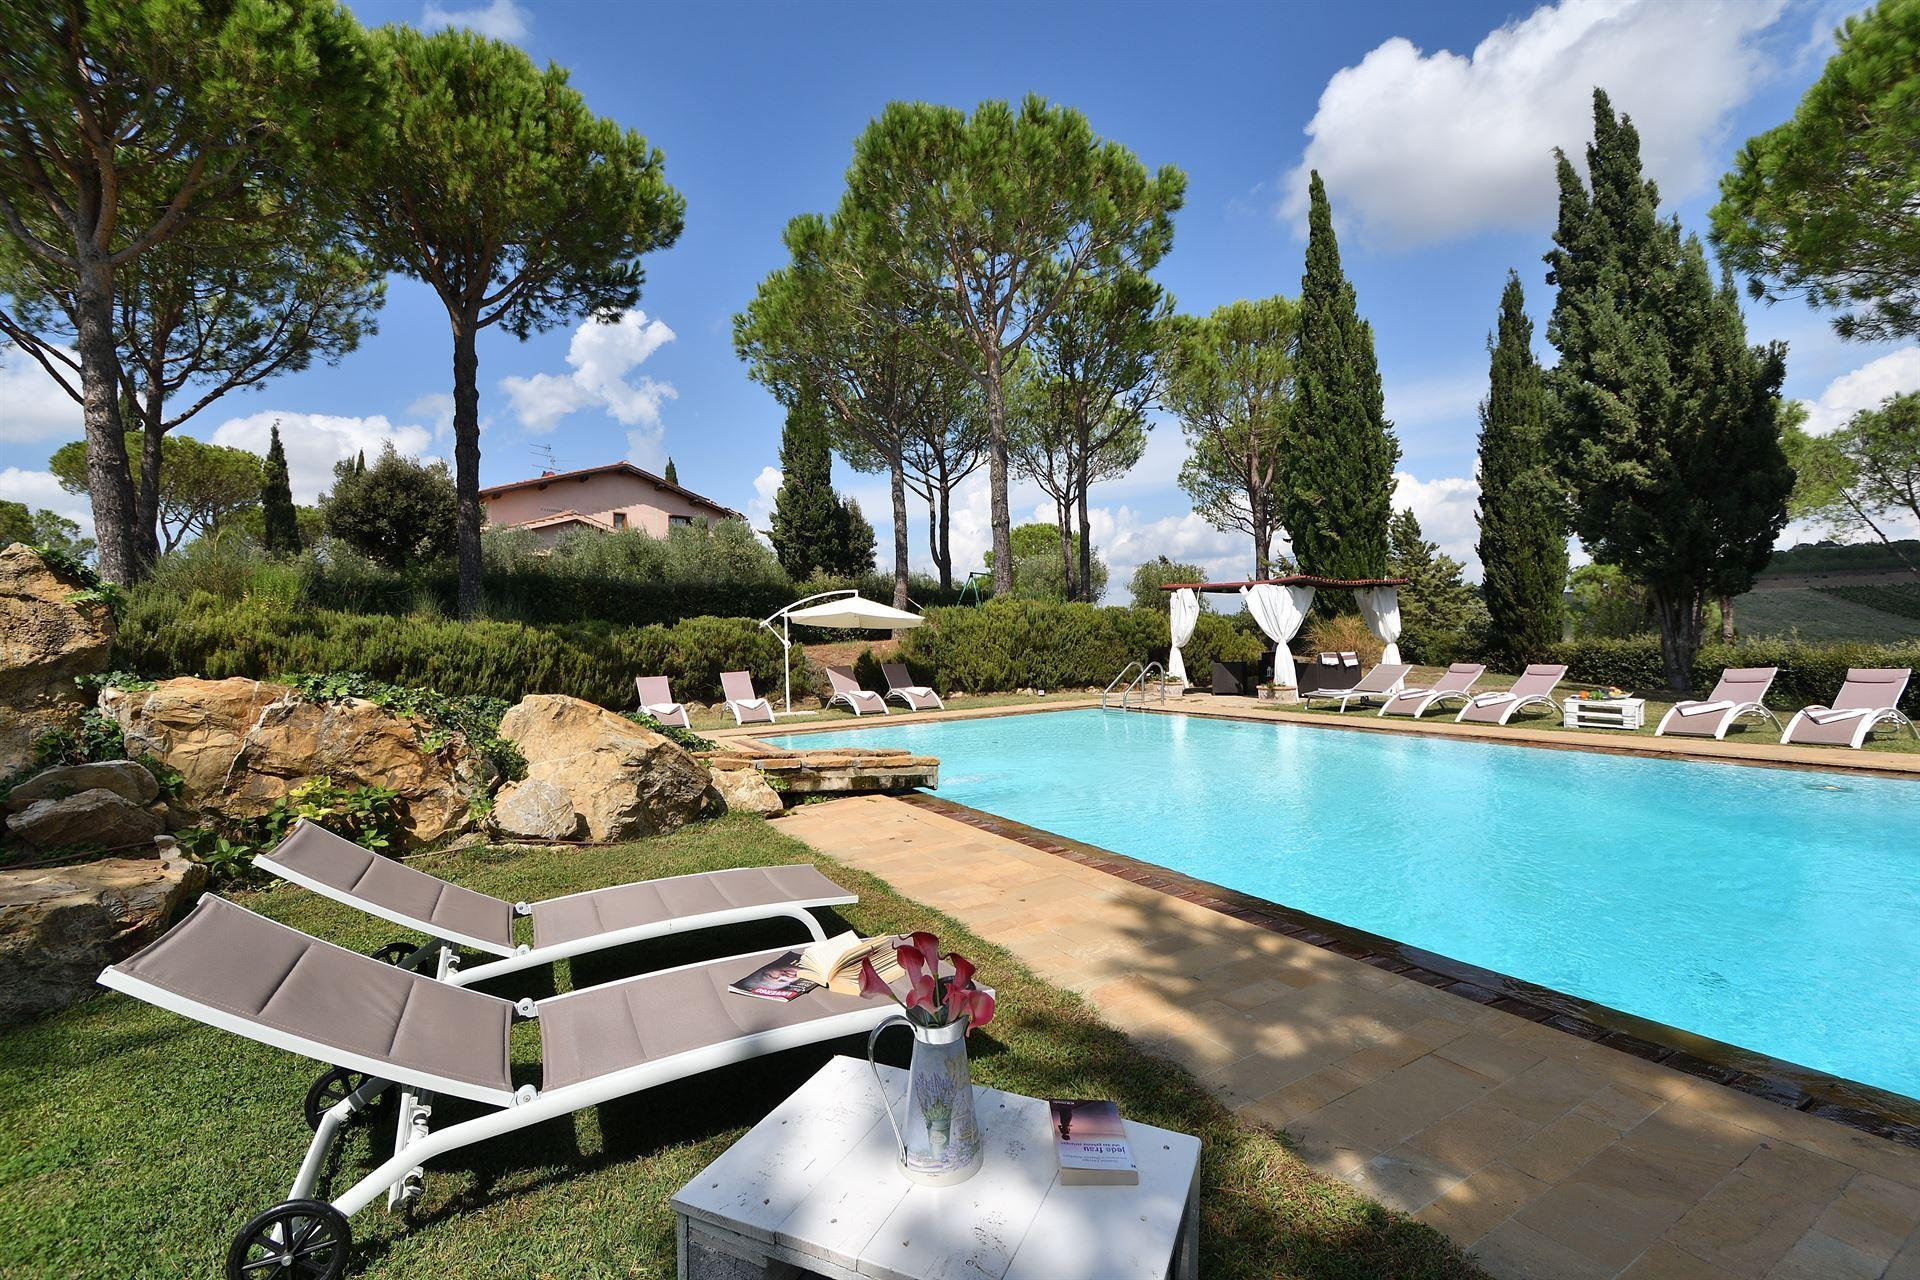 Charming Villa With Pool In Tuscan Vineyards